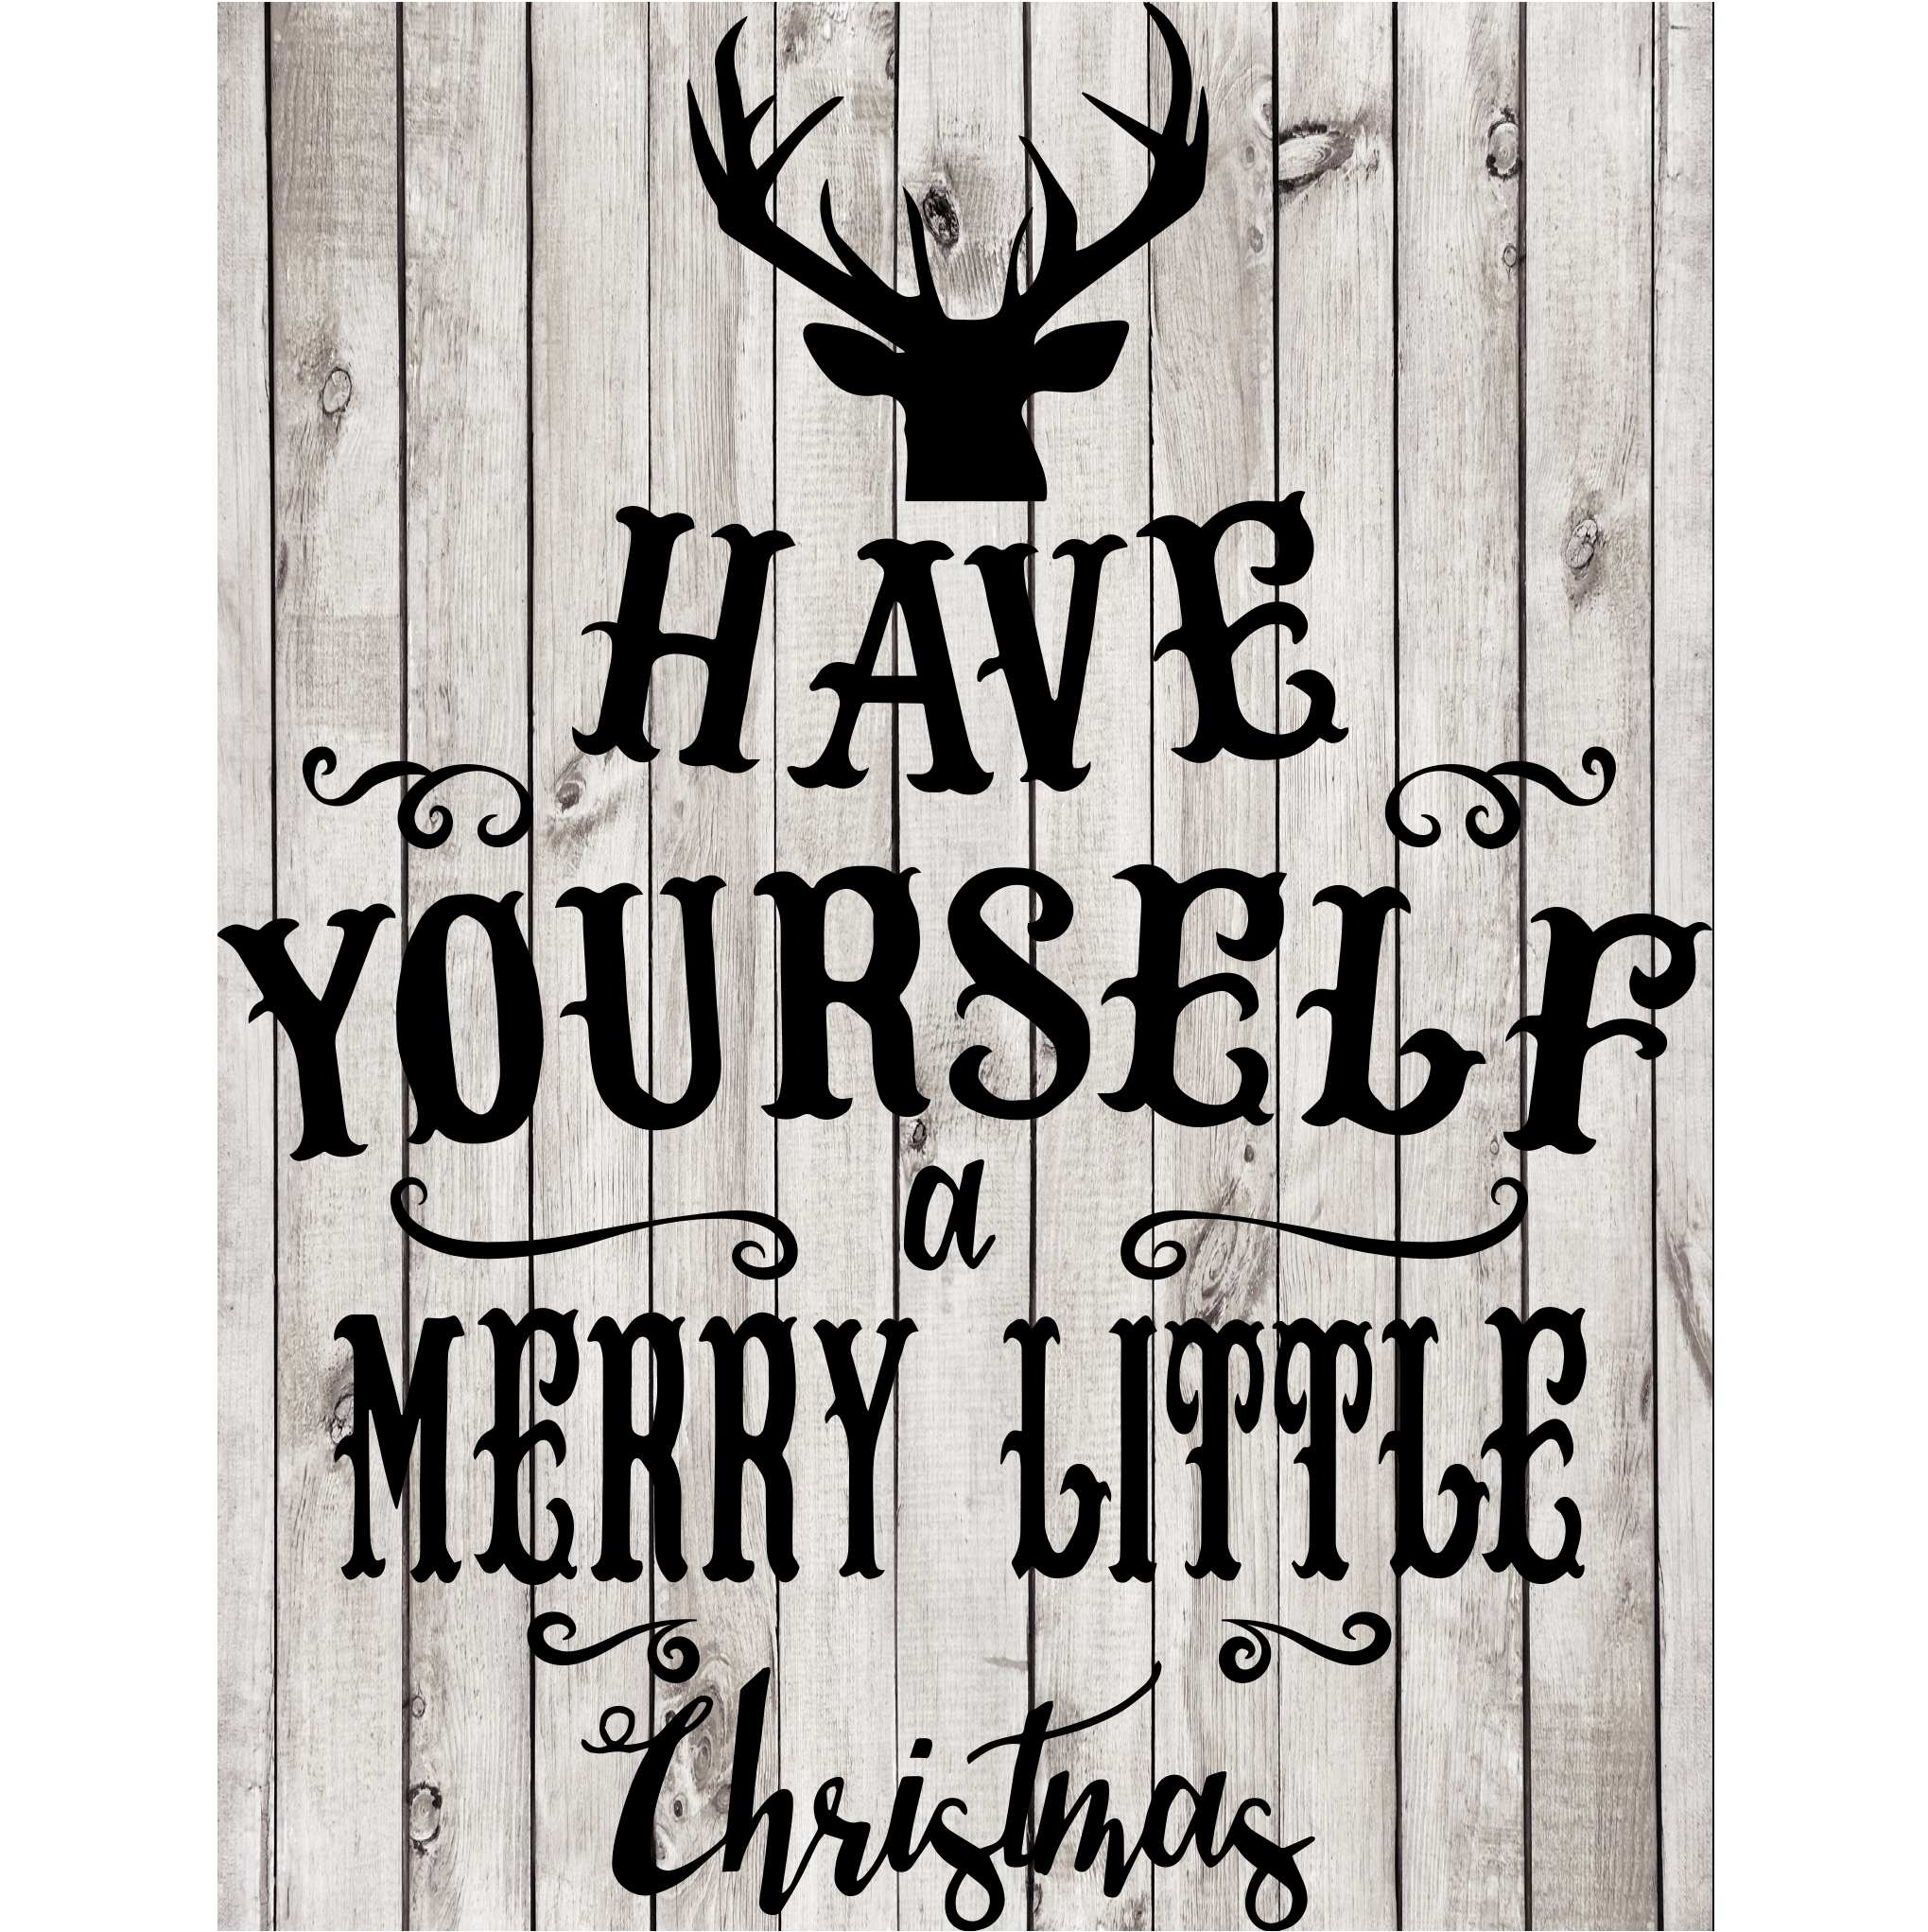 Have Yourself A Merry Little Christmas Svg.Merry Christmas Cut File New Horizons Designs